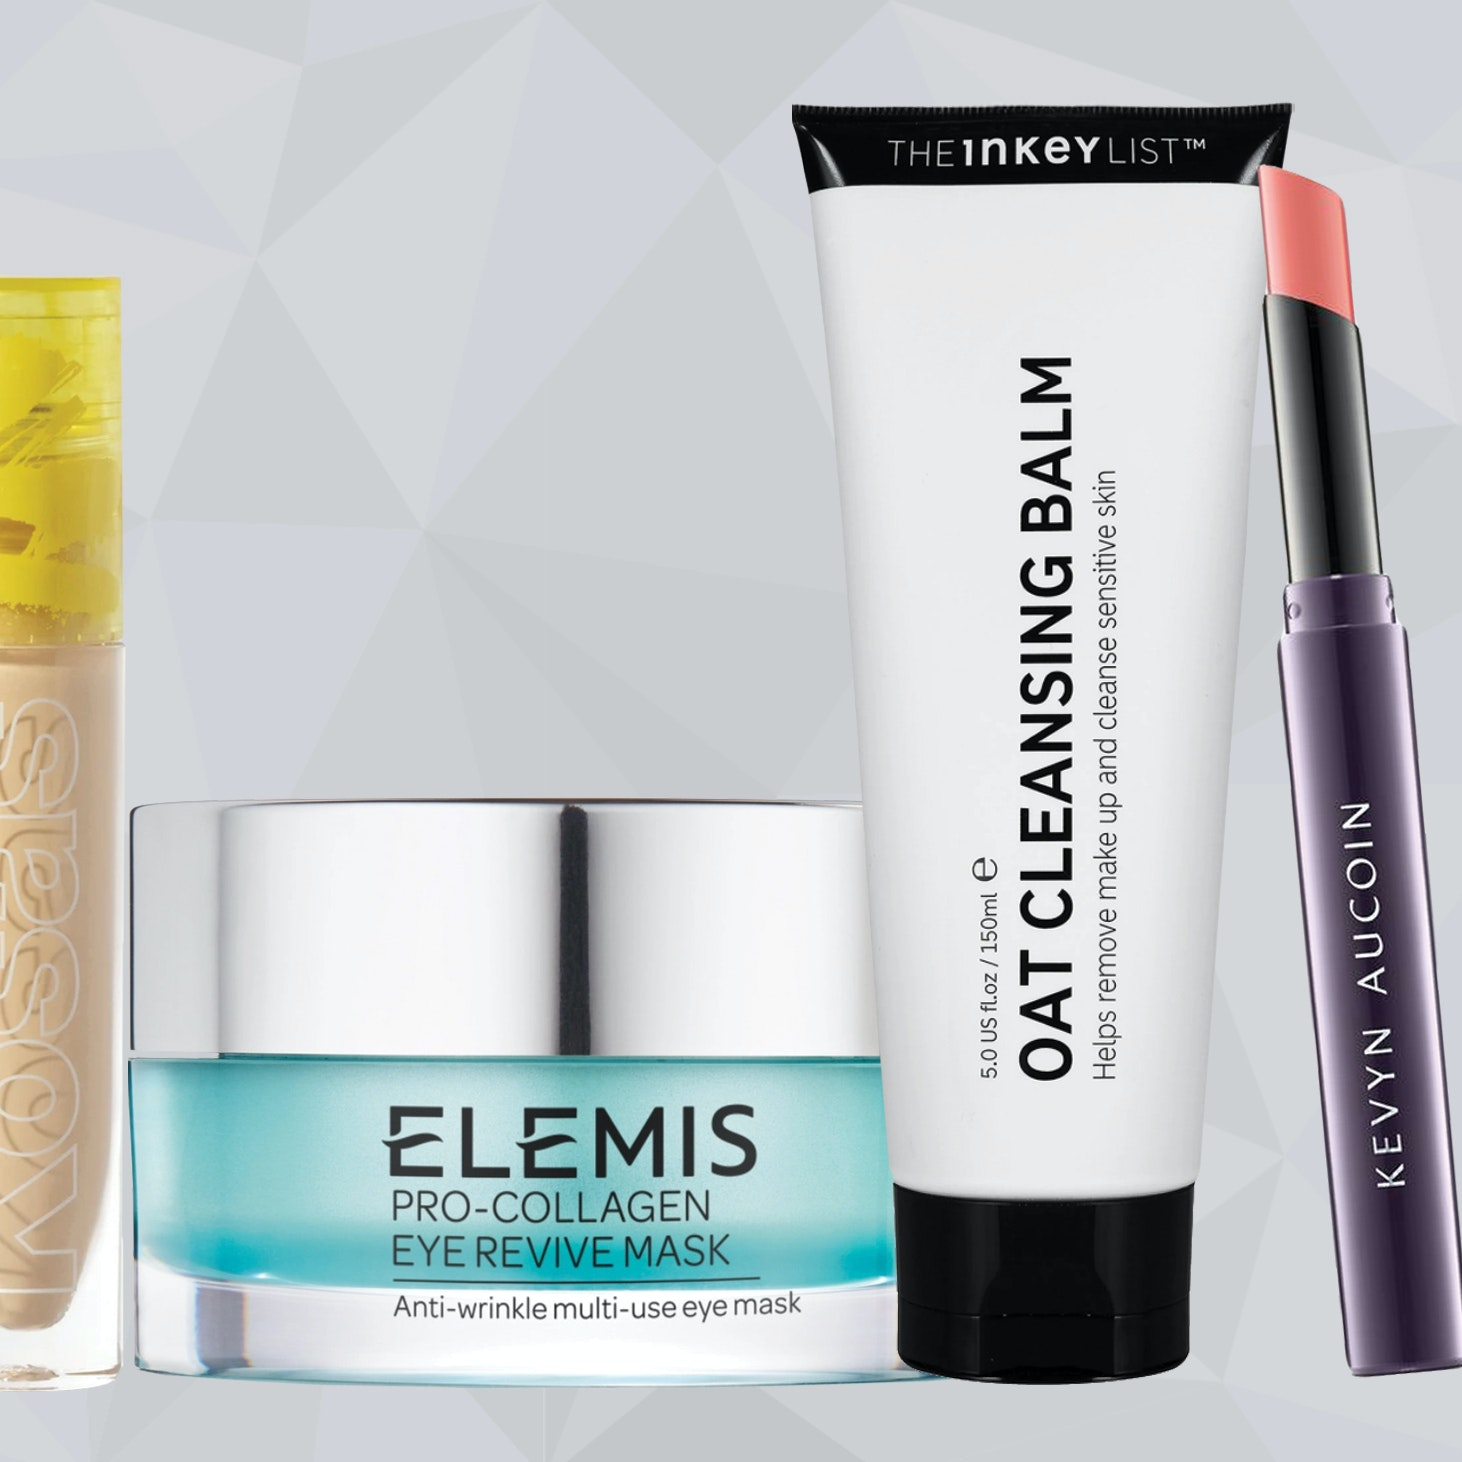 Exfoliating Oil Cleansers, Luminous Sunscreens, & More New Launches We Love This April